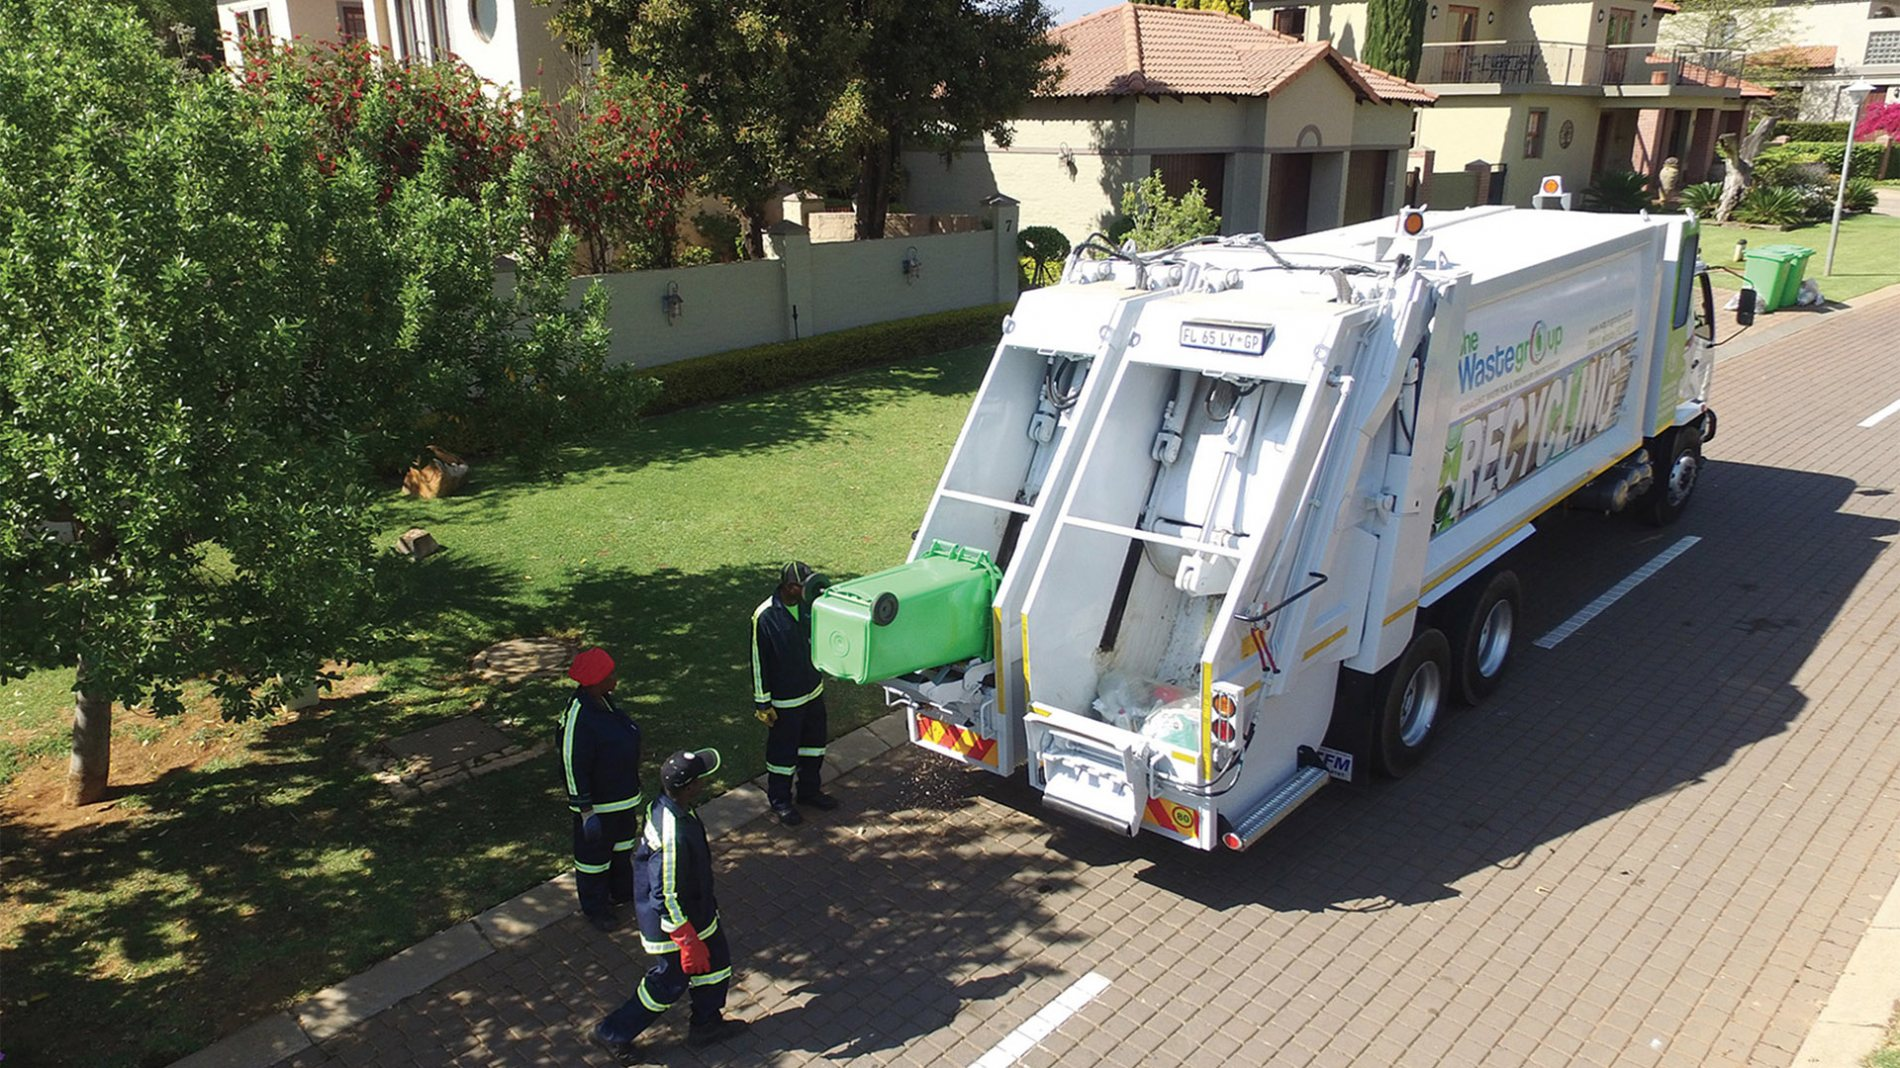 Check local service delivery before buying